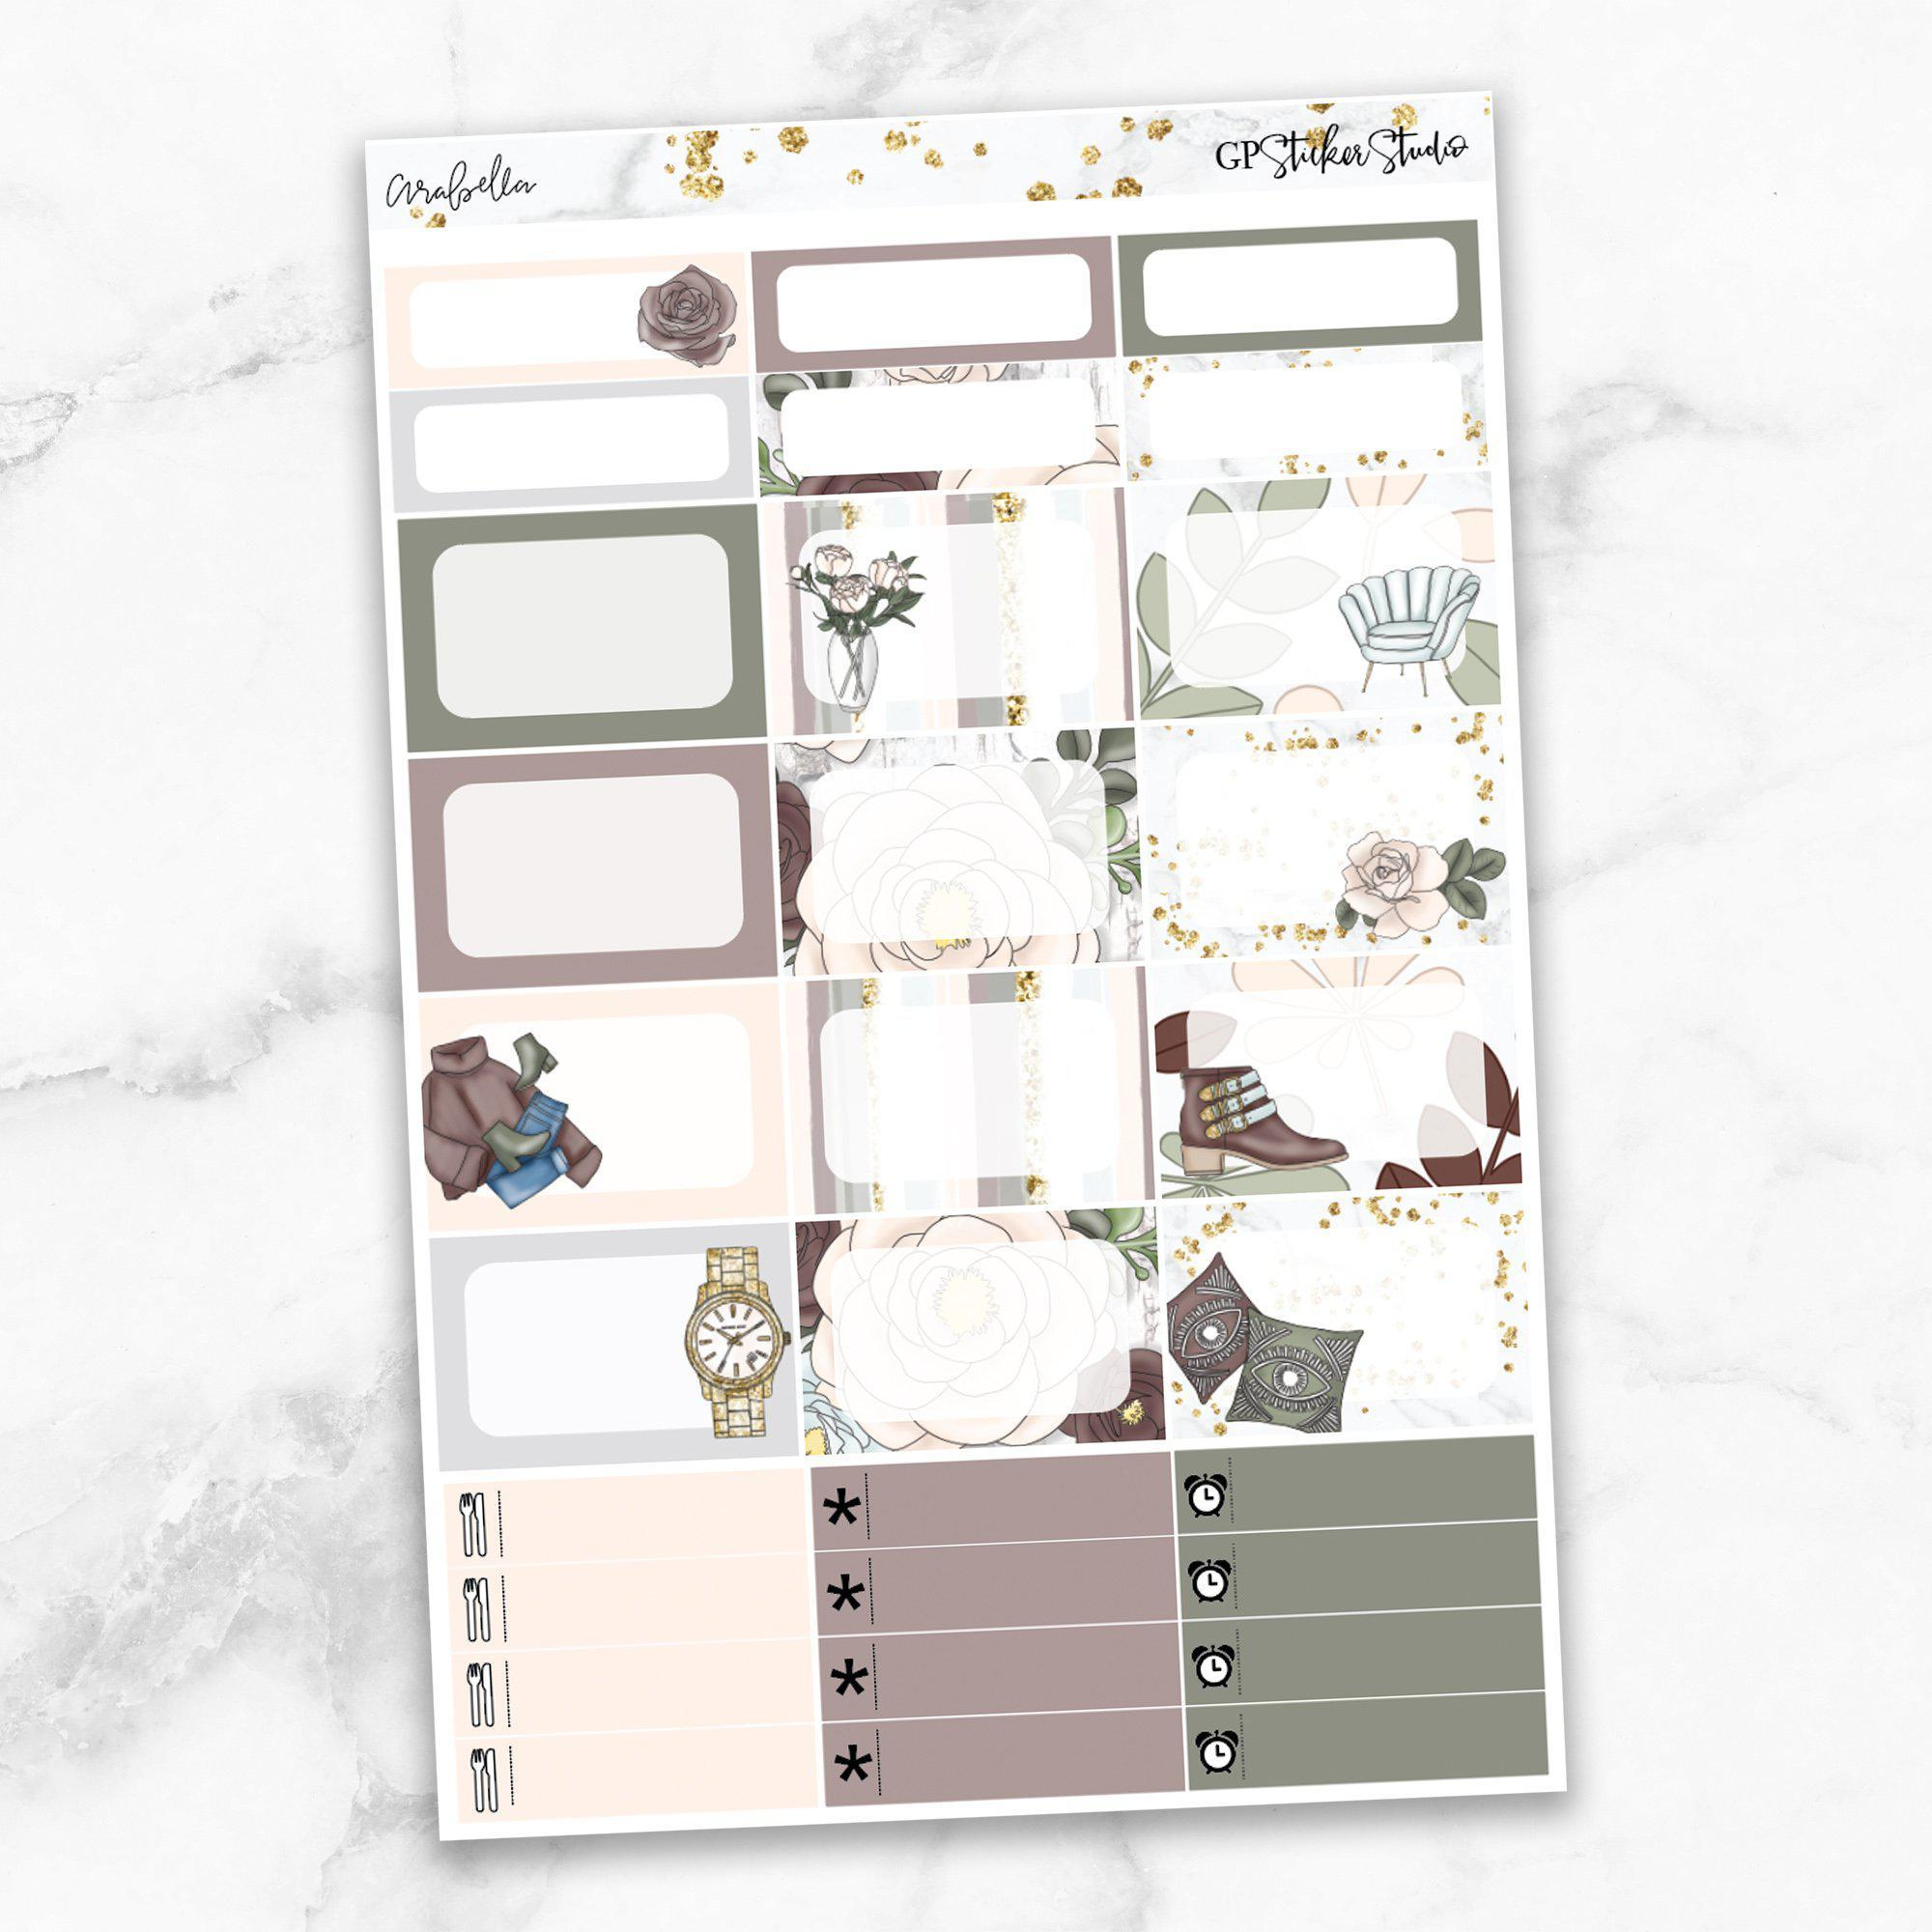 ARABELLA Half Boxes Planner Stickers-The GP Studio